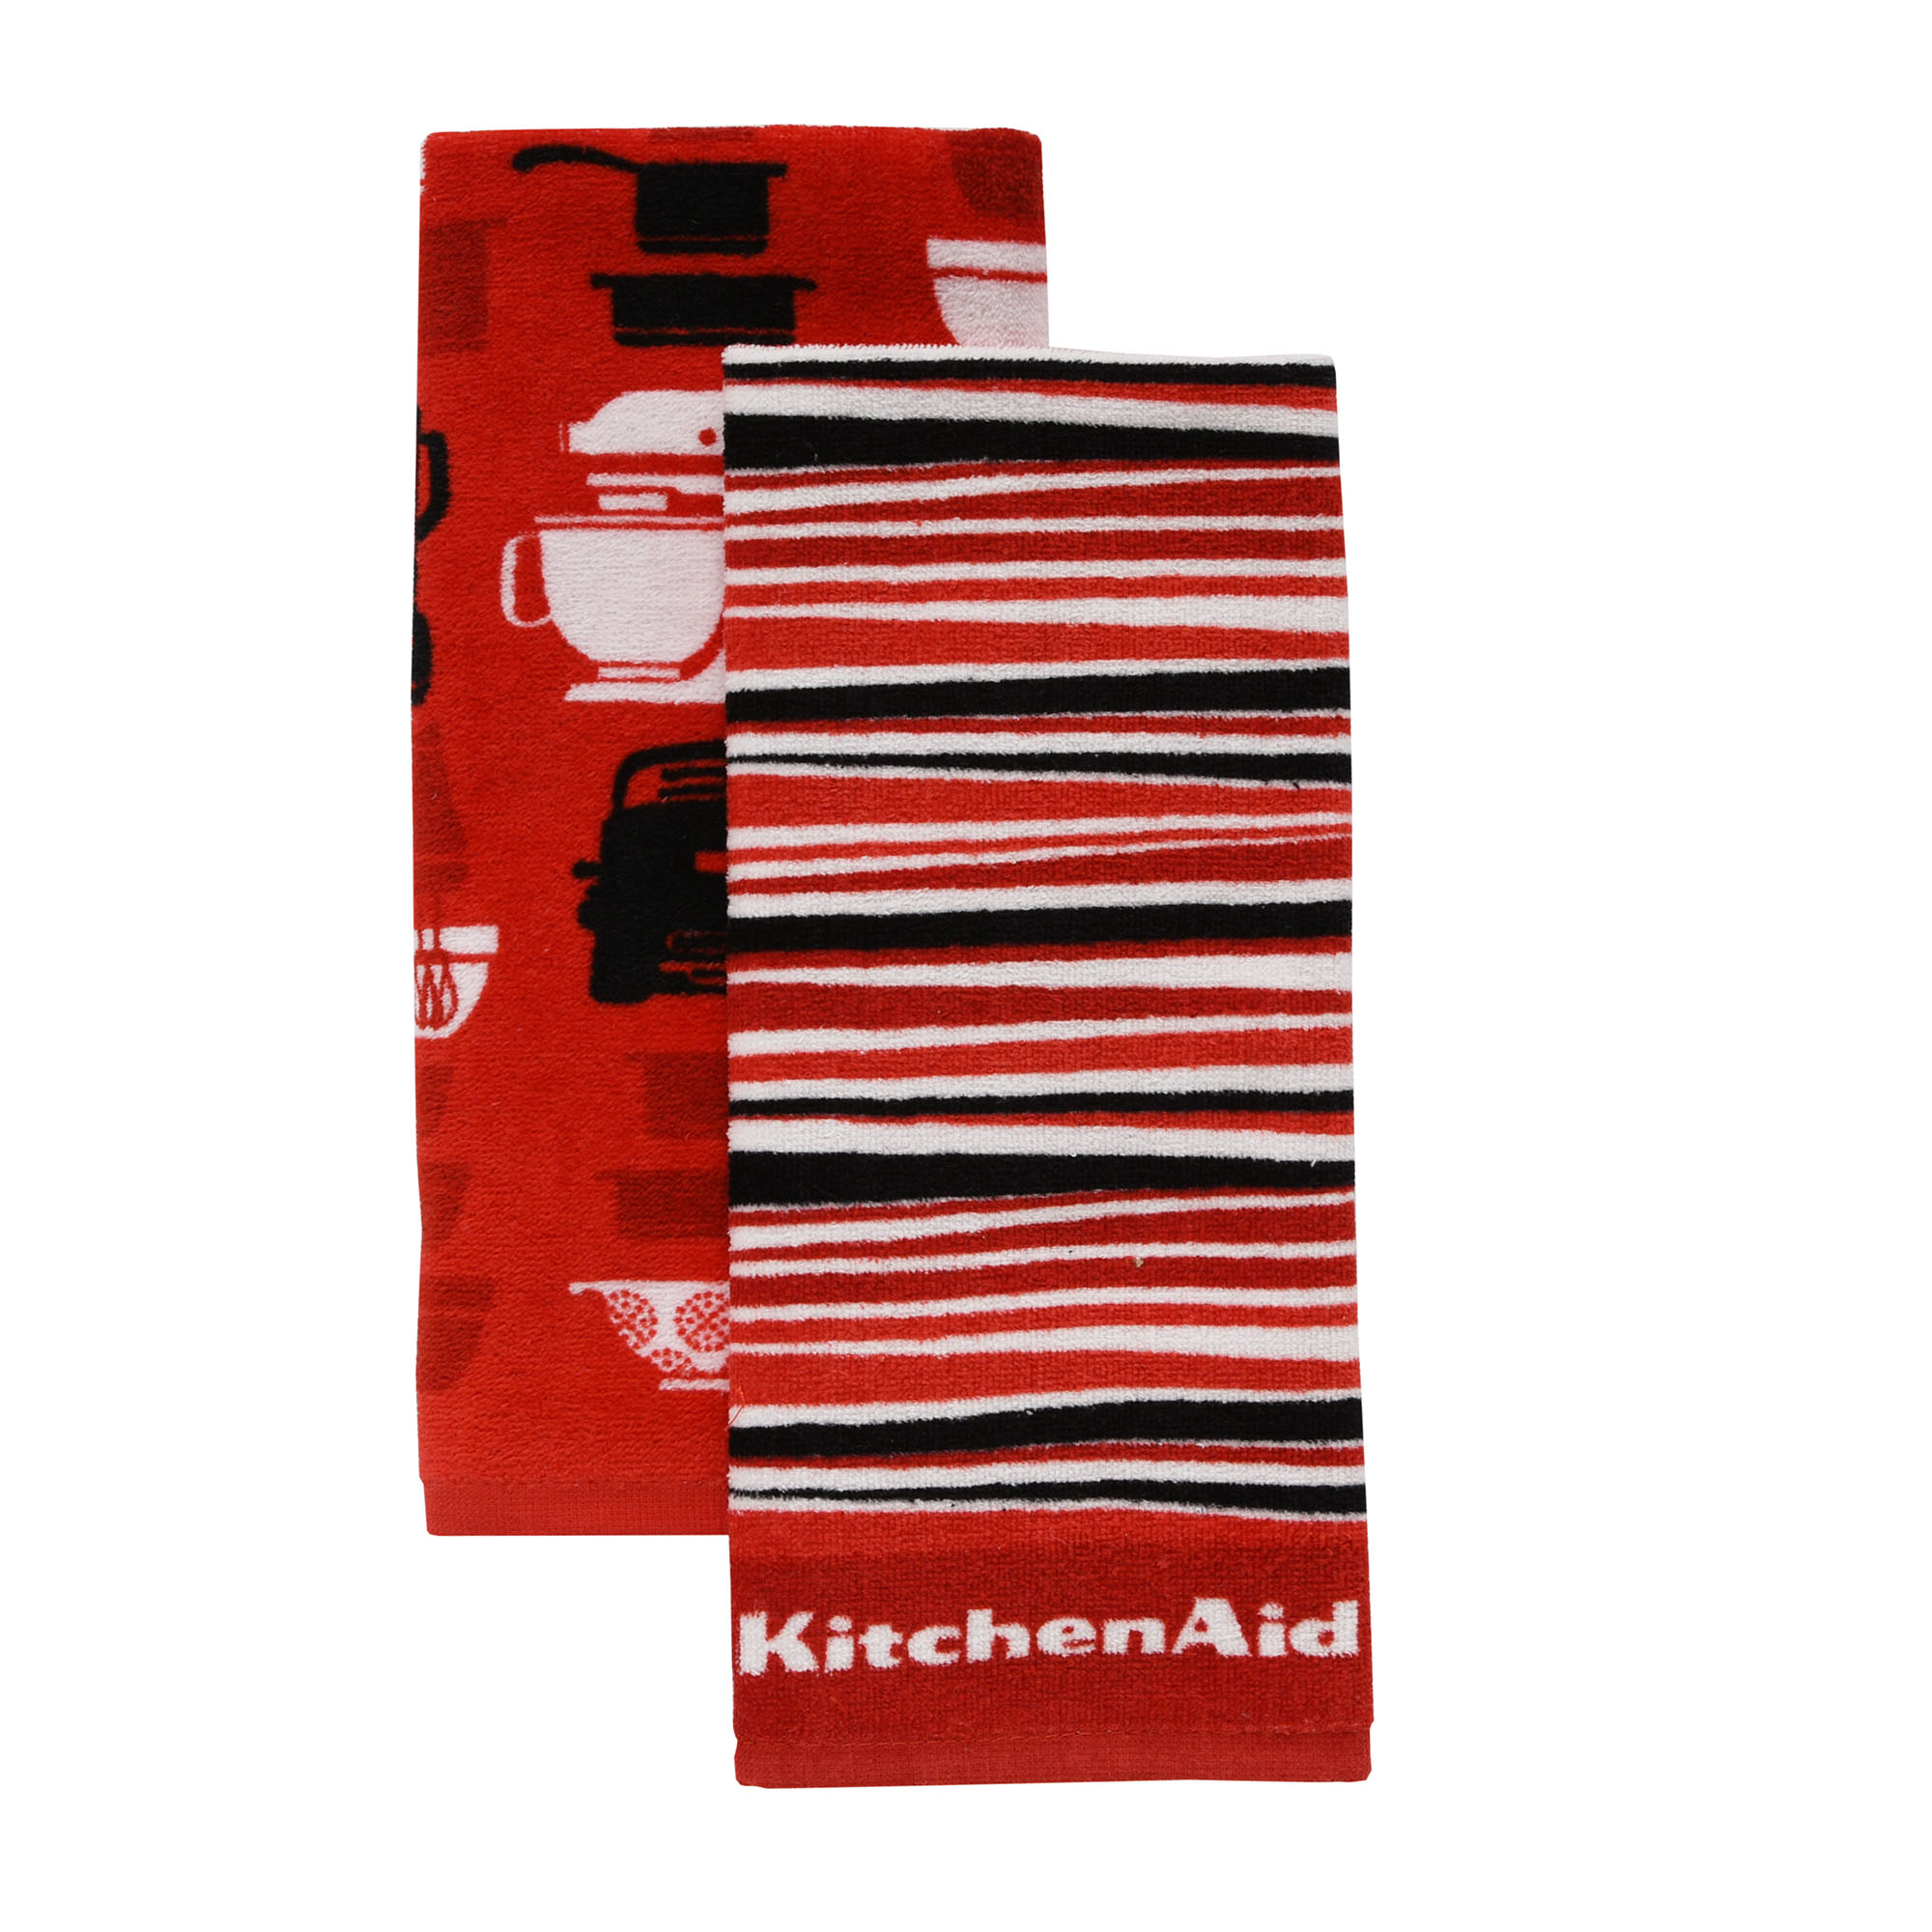 KitchenAid Appliances & Stripe Kitchen Towels, Set of 2, Red by TOWN & COUNTRY